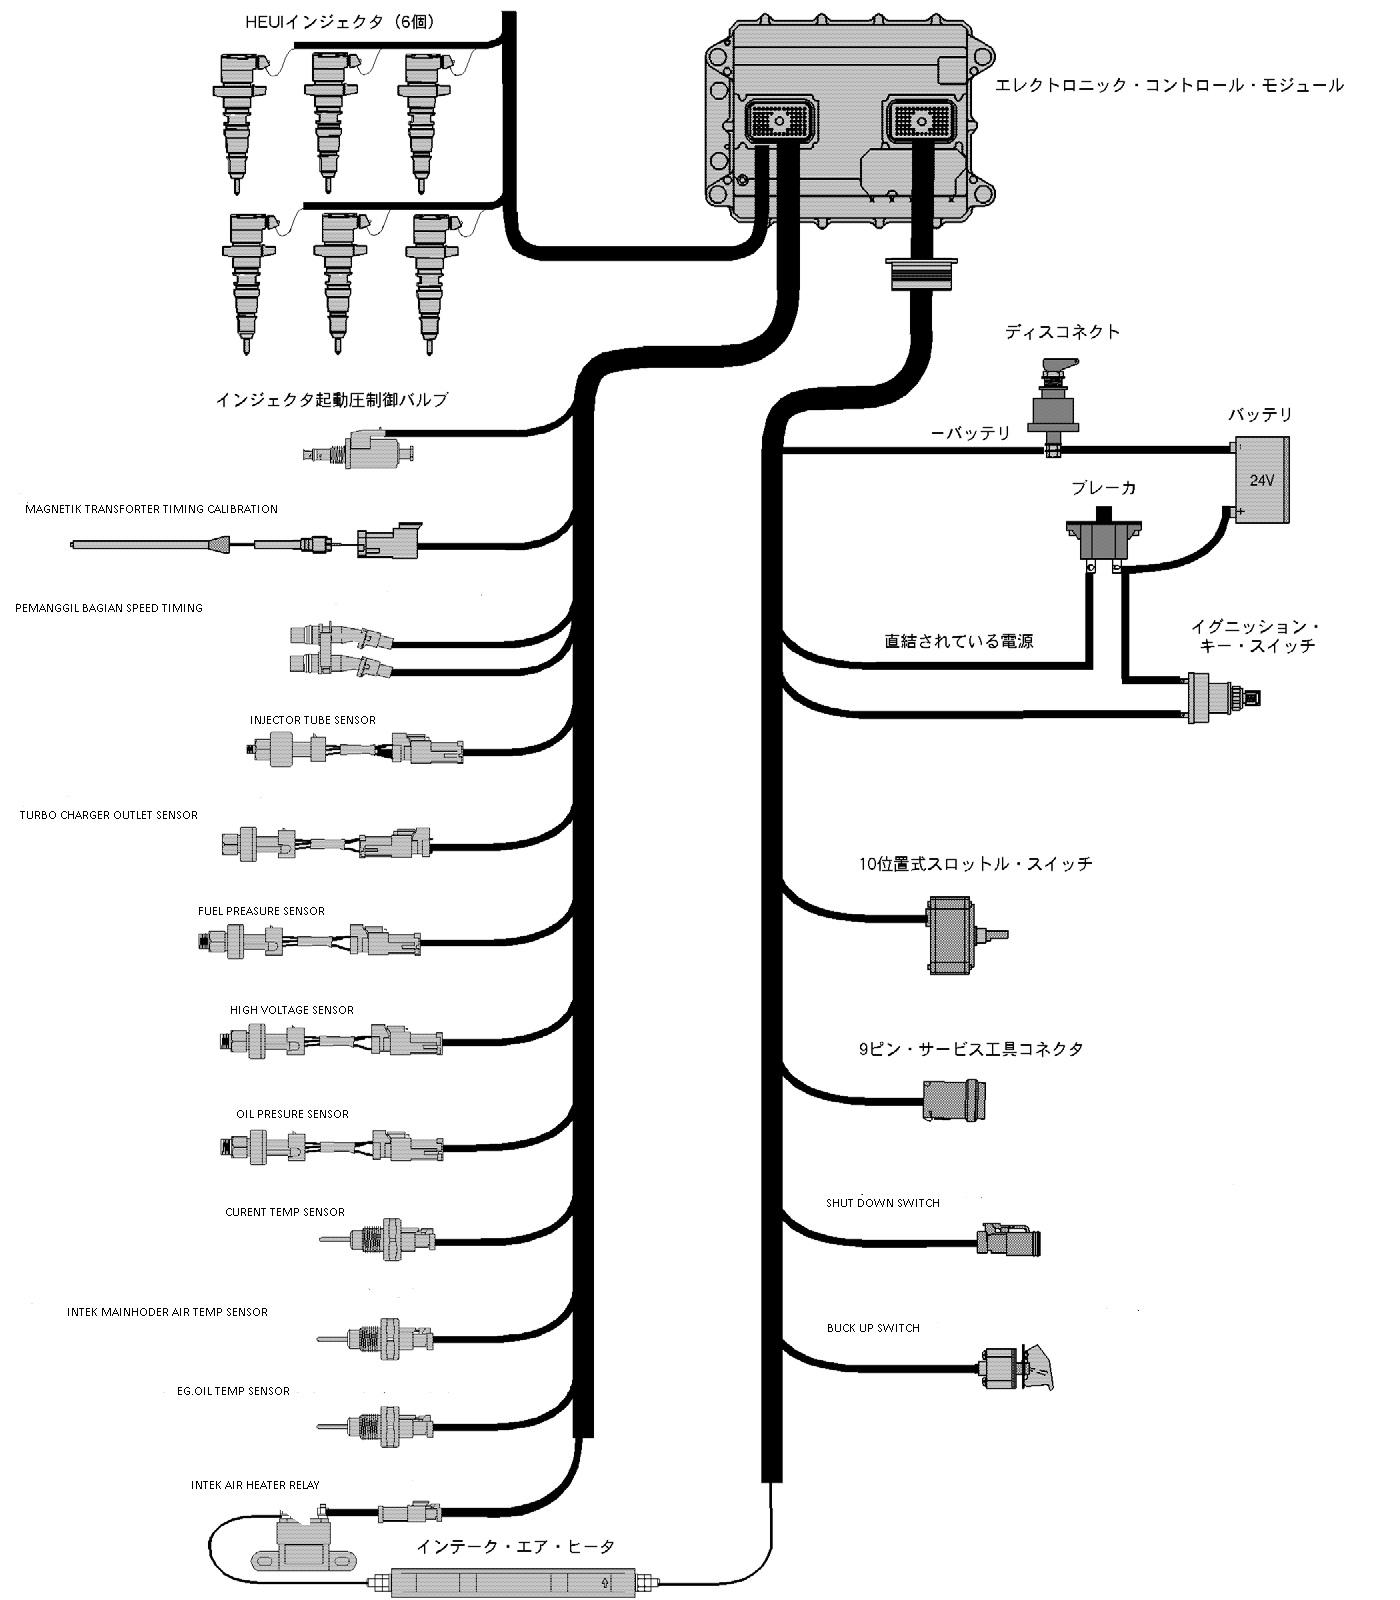 3306 cat engine diagram html